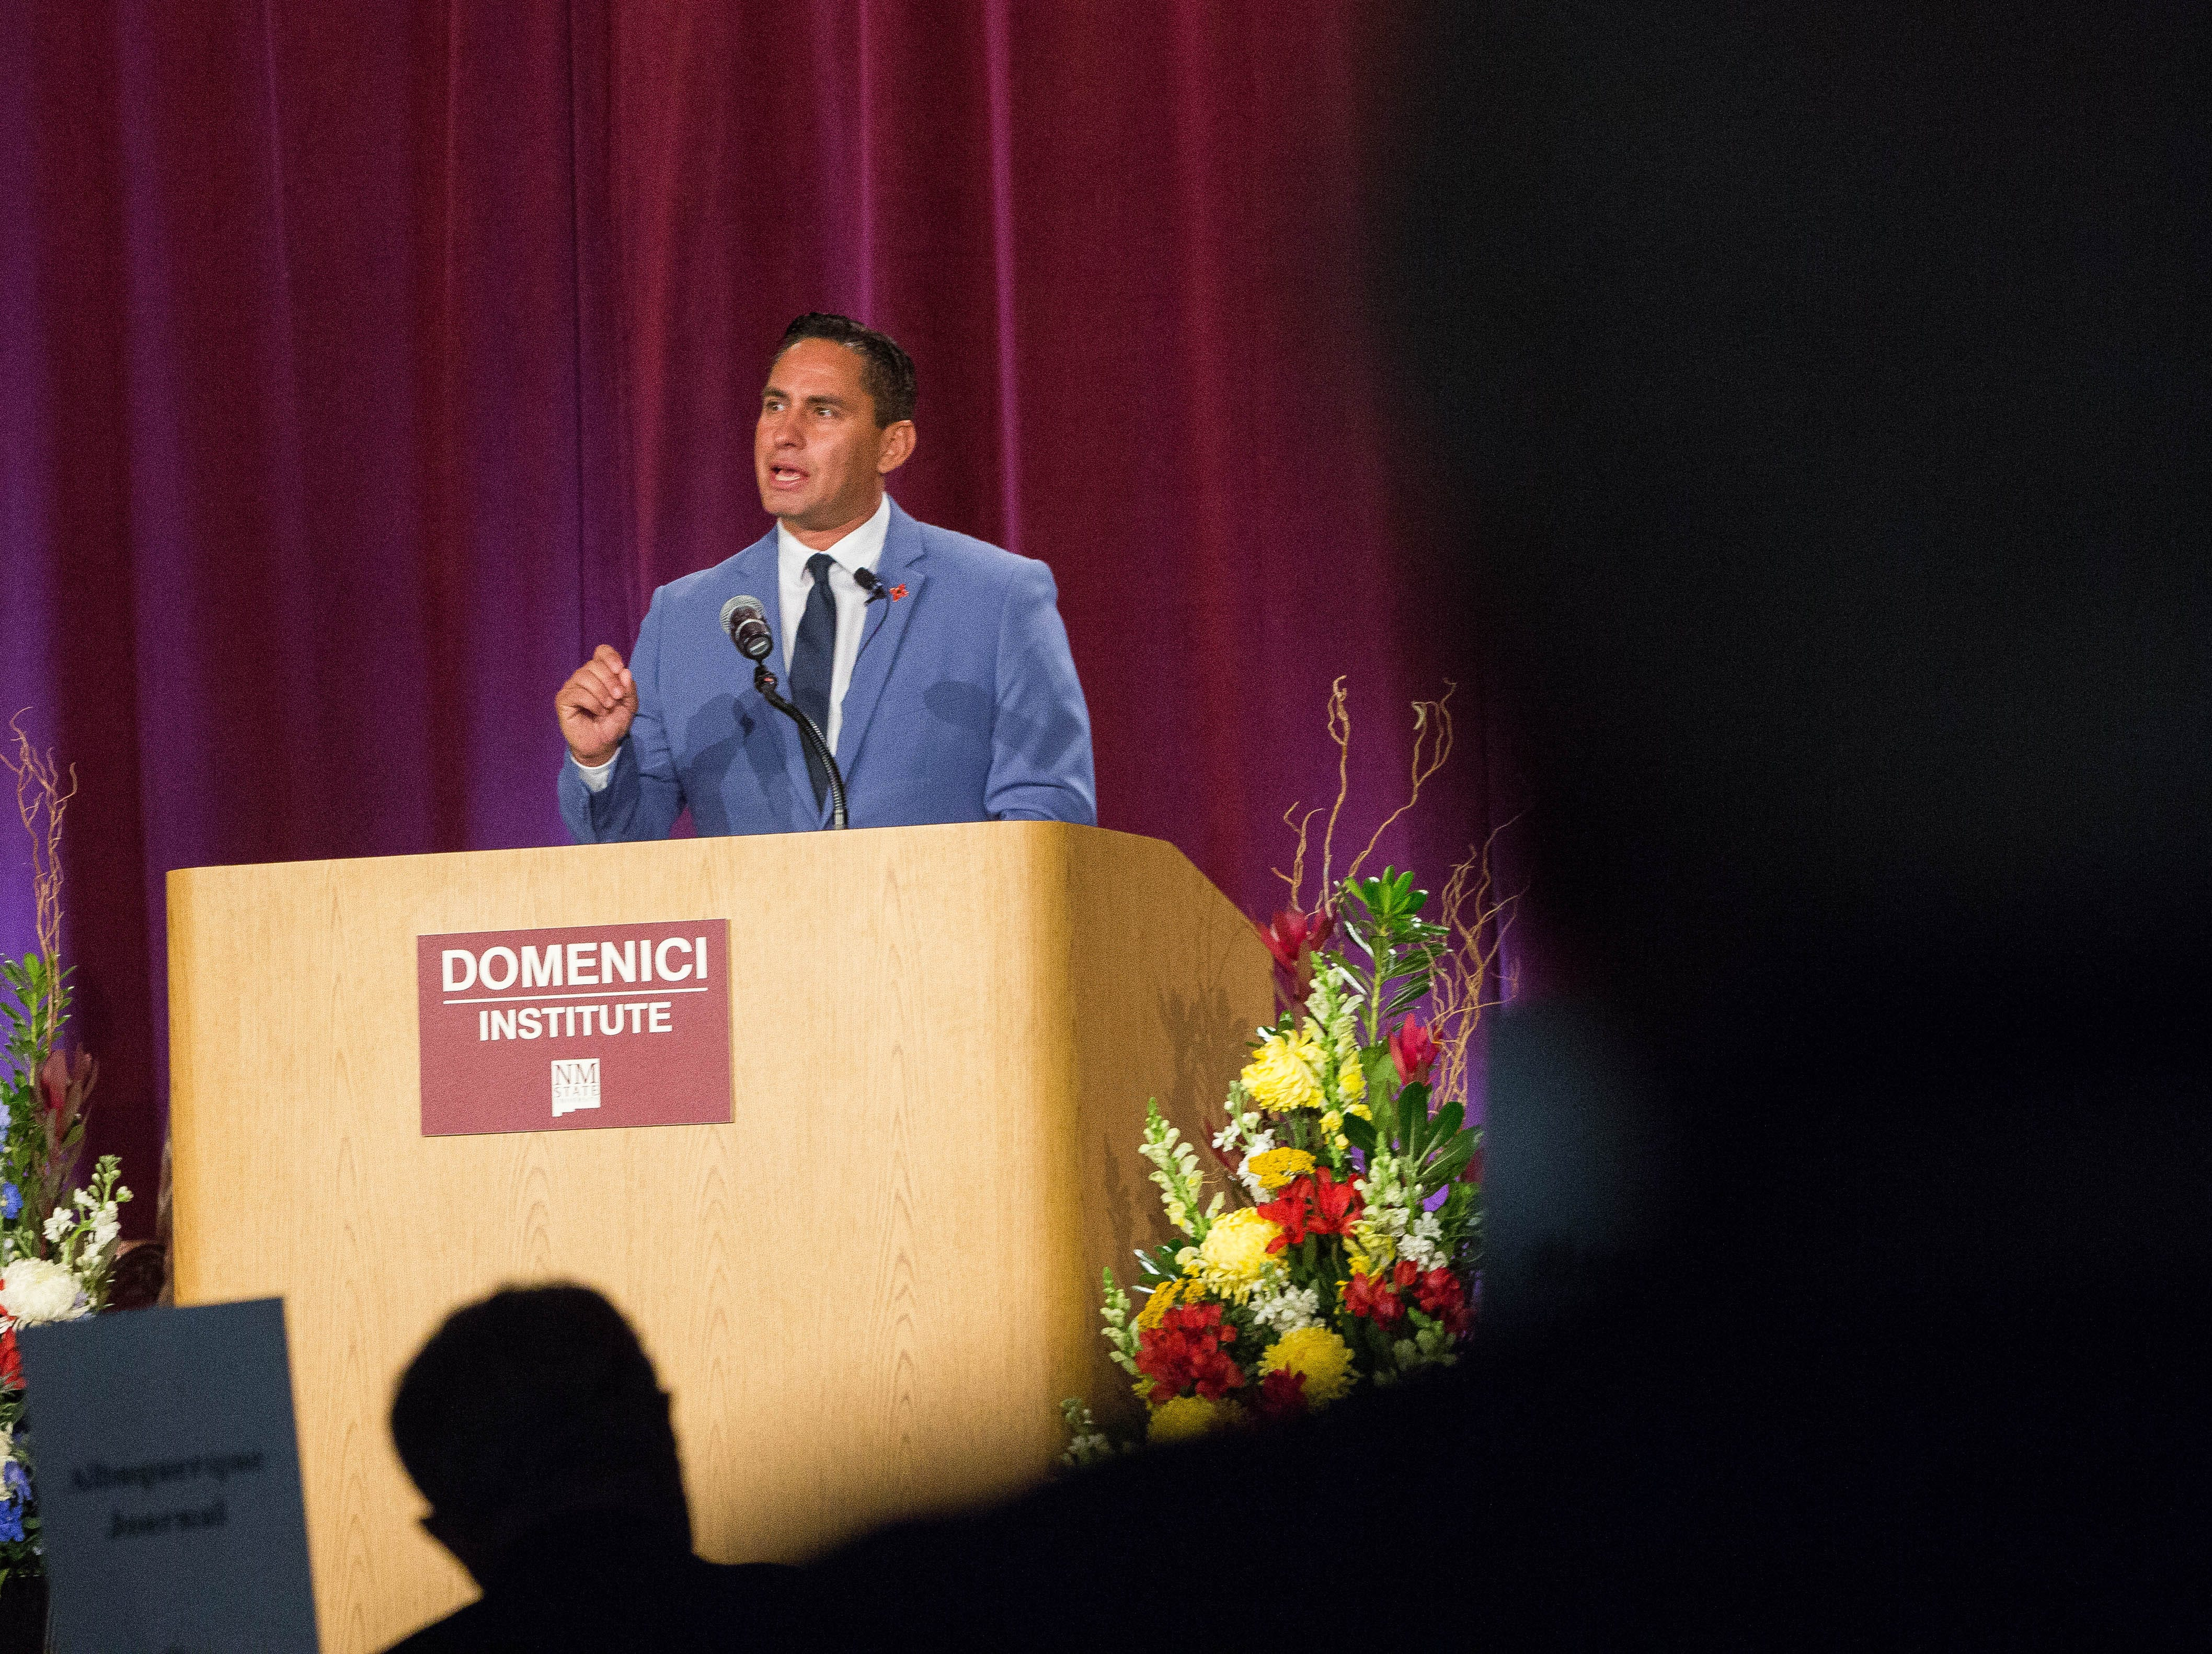 Howie Morales, democratic candidate for Lieutenant Governor, speaks at the 2018 Domenici Public Policy Conference at the Las Cruces Convention Center, Thursday, September 13, 2018.